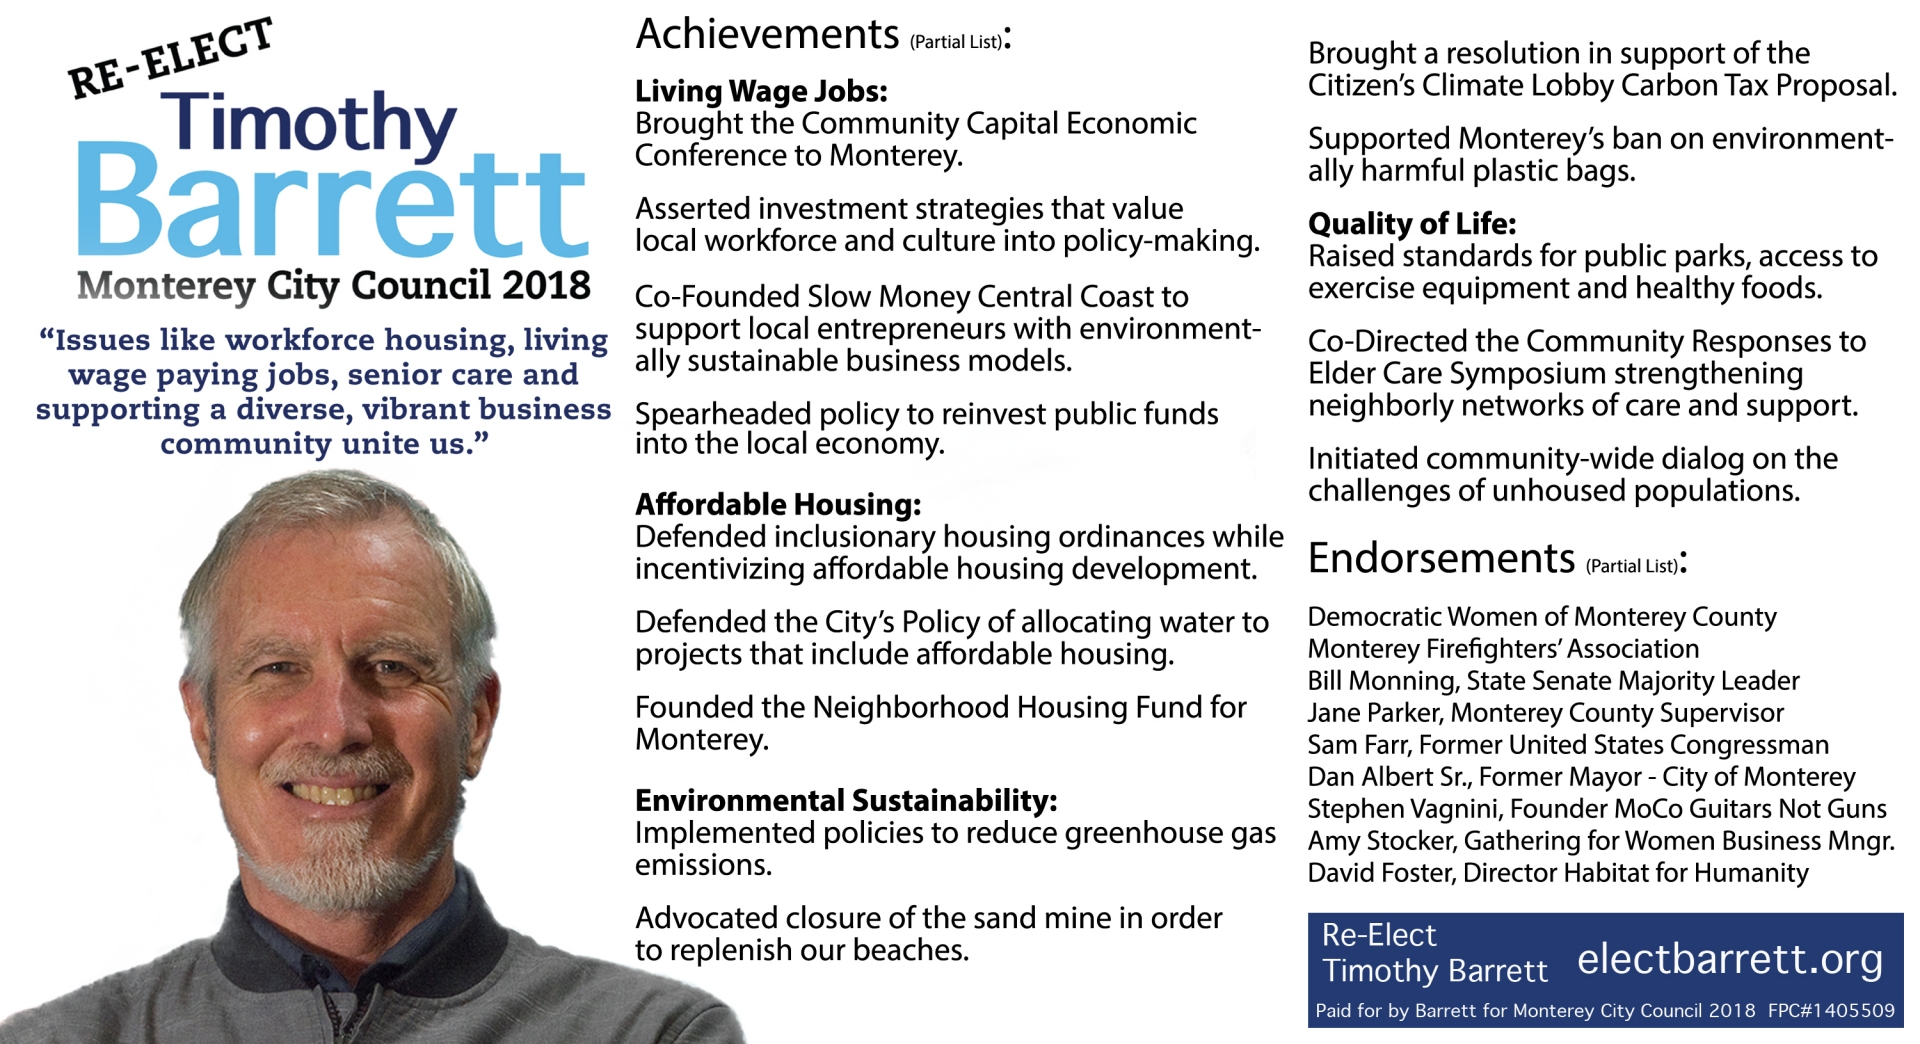 Timothy Barrett Achievements